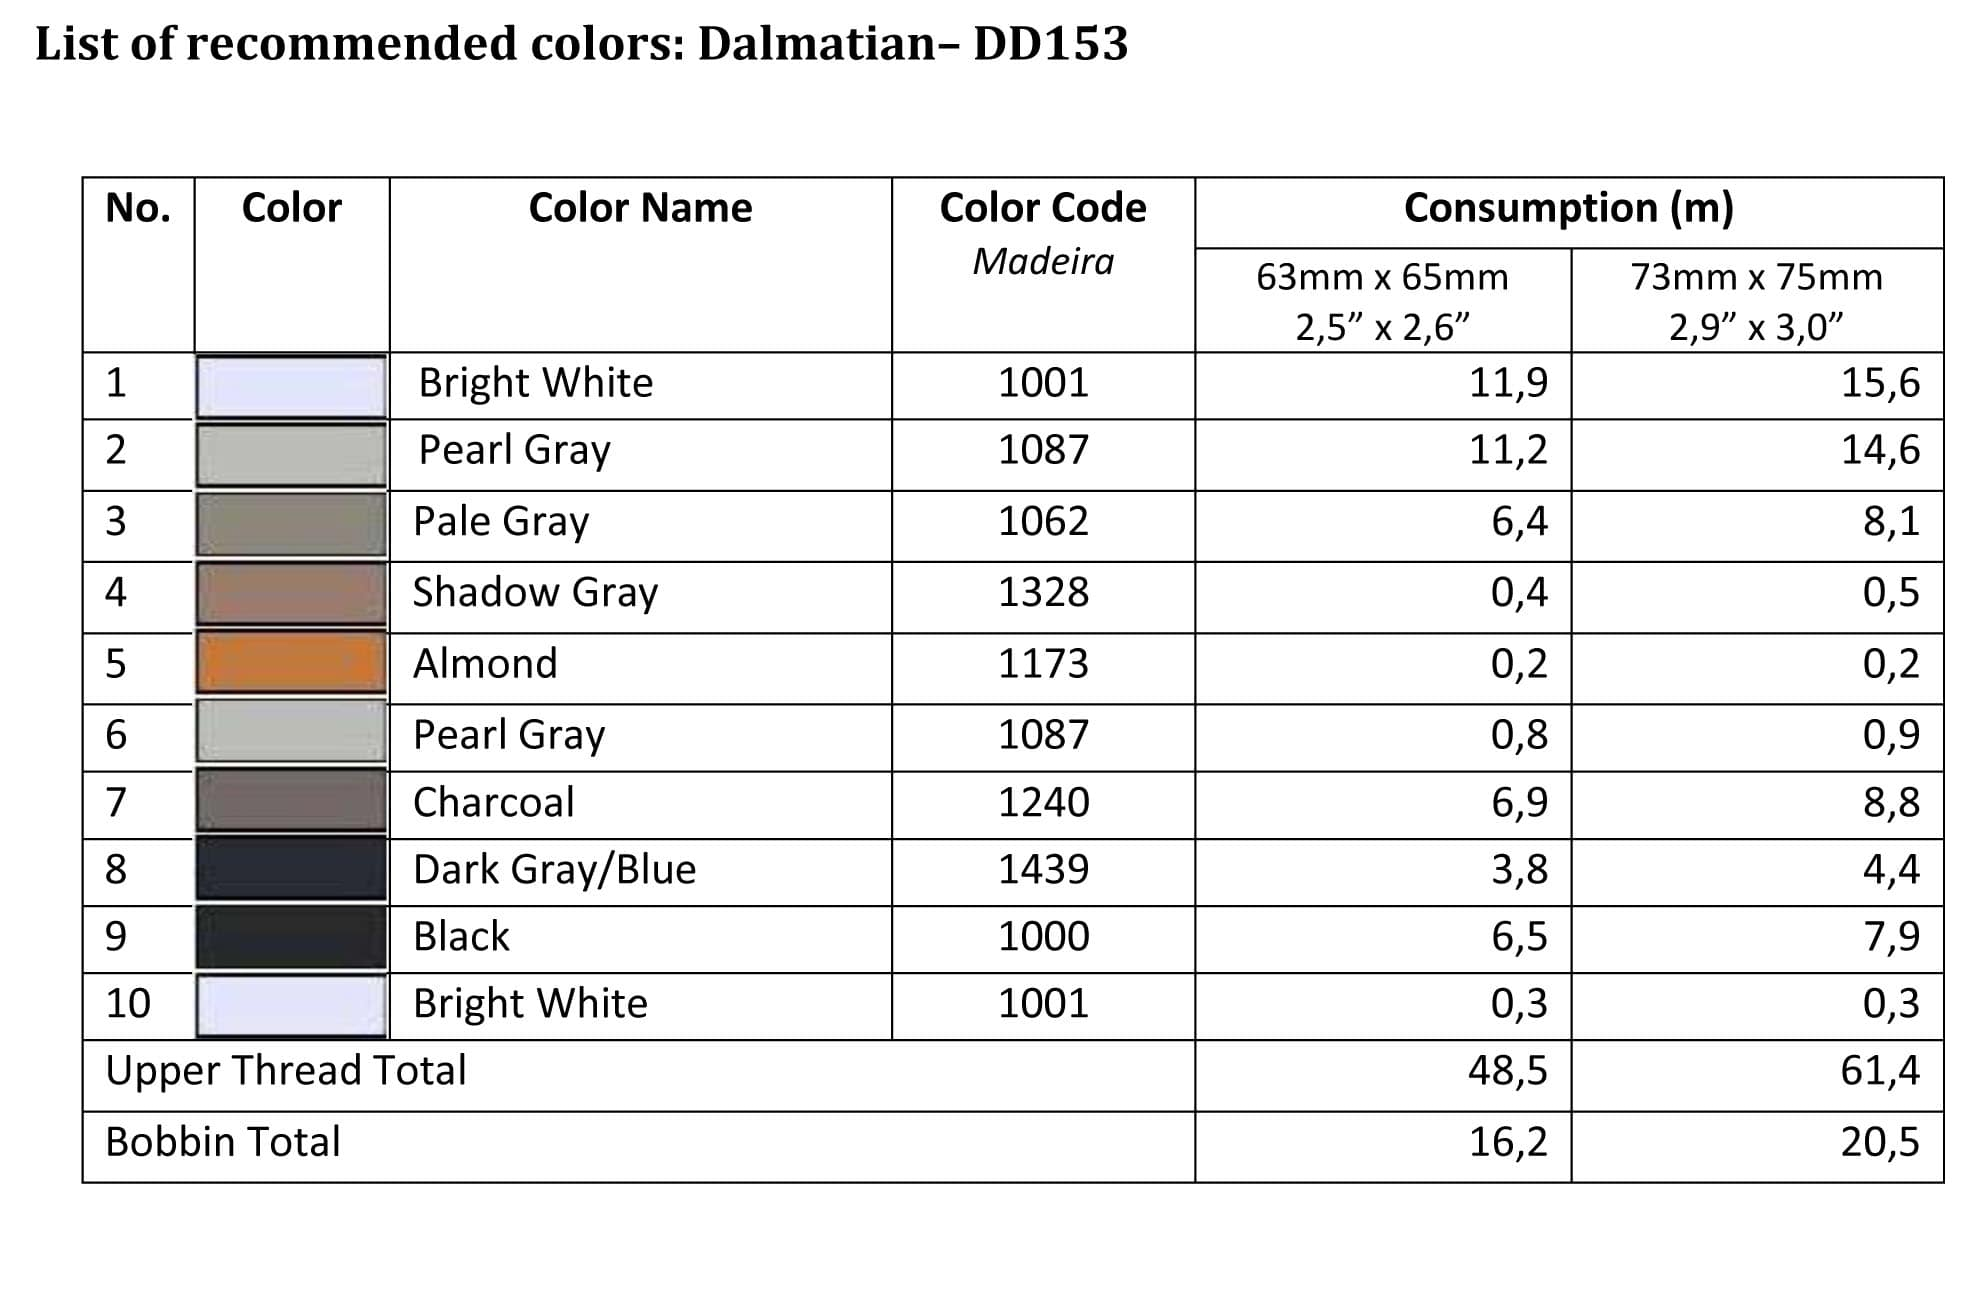 List of recommended colors - Dalmatian- DD153